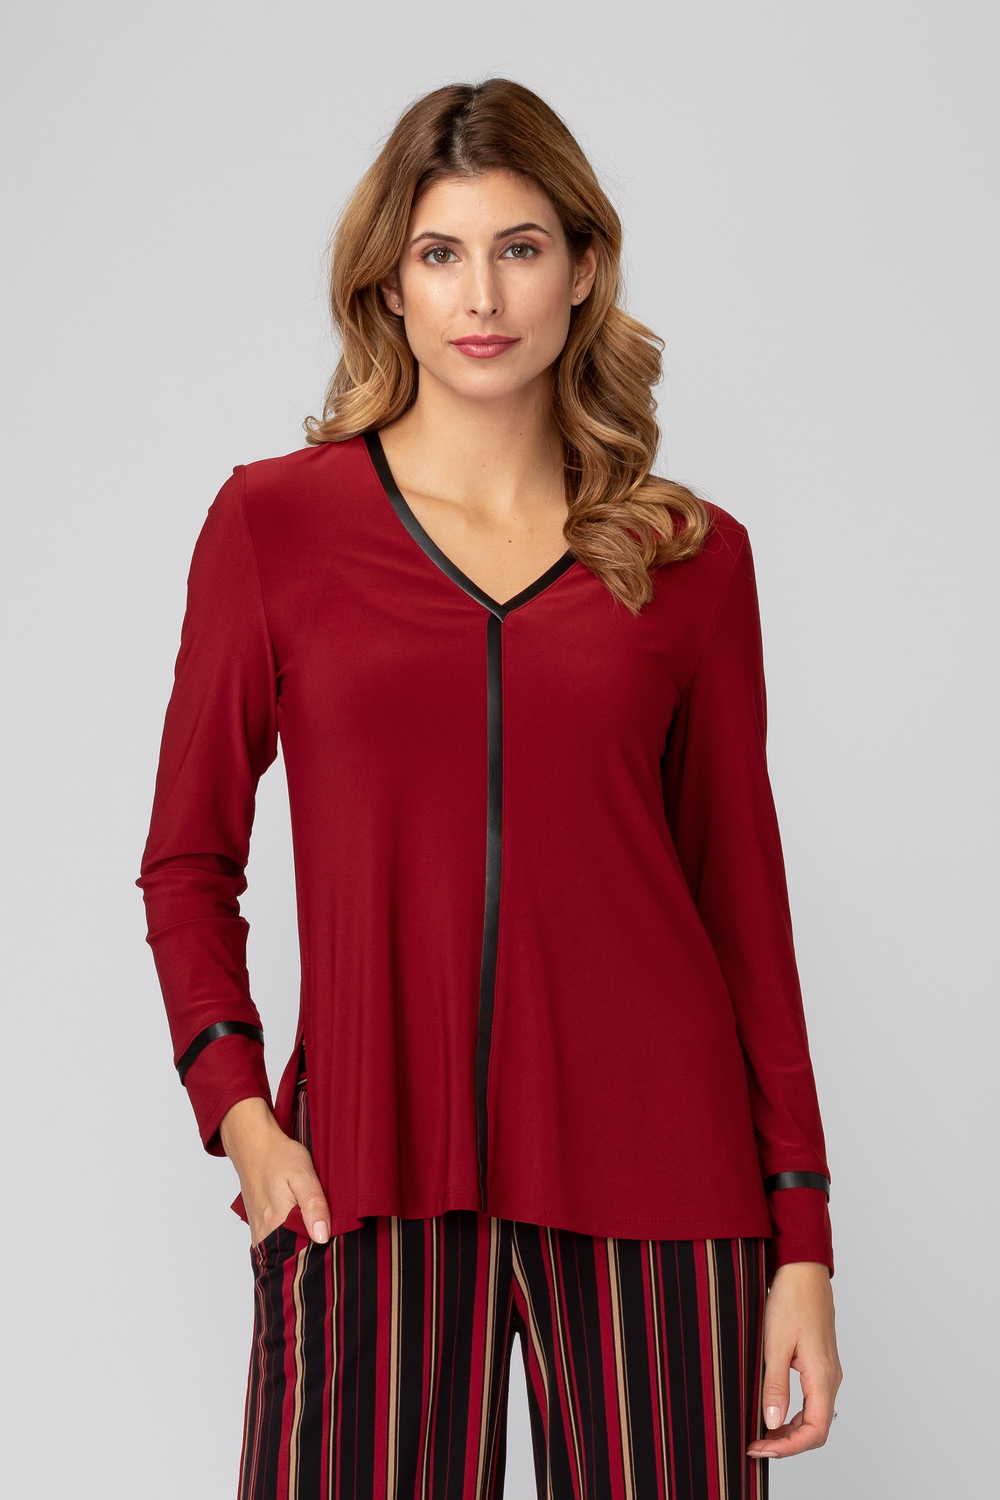 Joseph Ribkoff IMPERIAL RED/BLACK Tees & Camis Style 193160